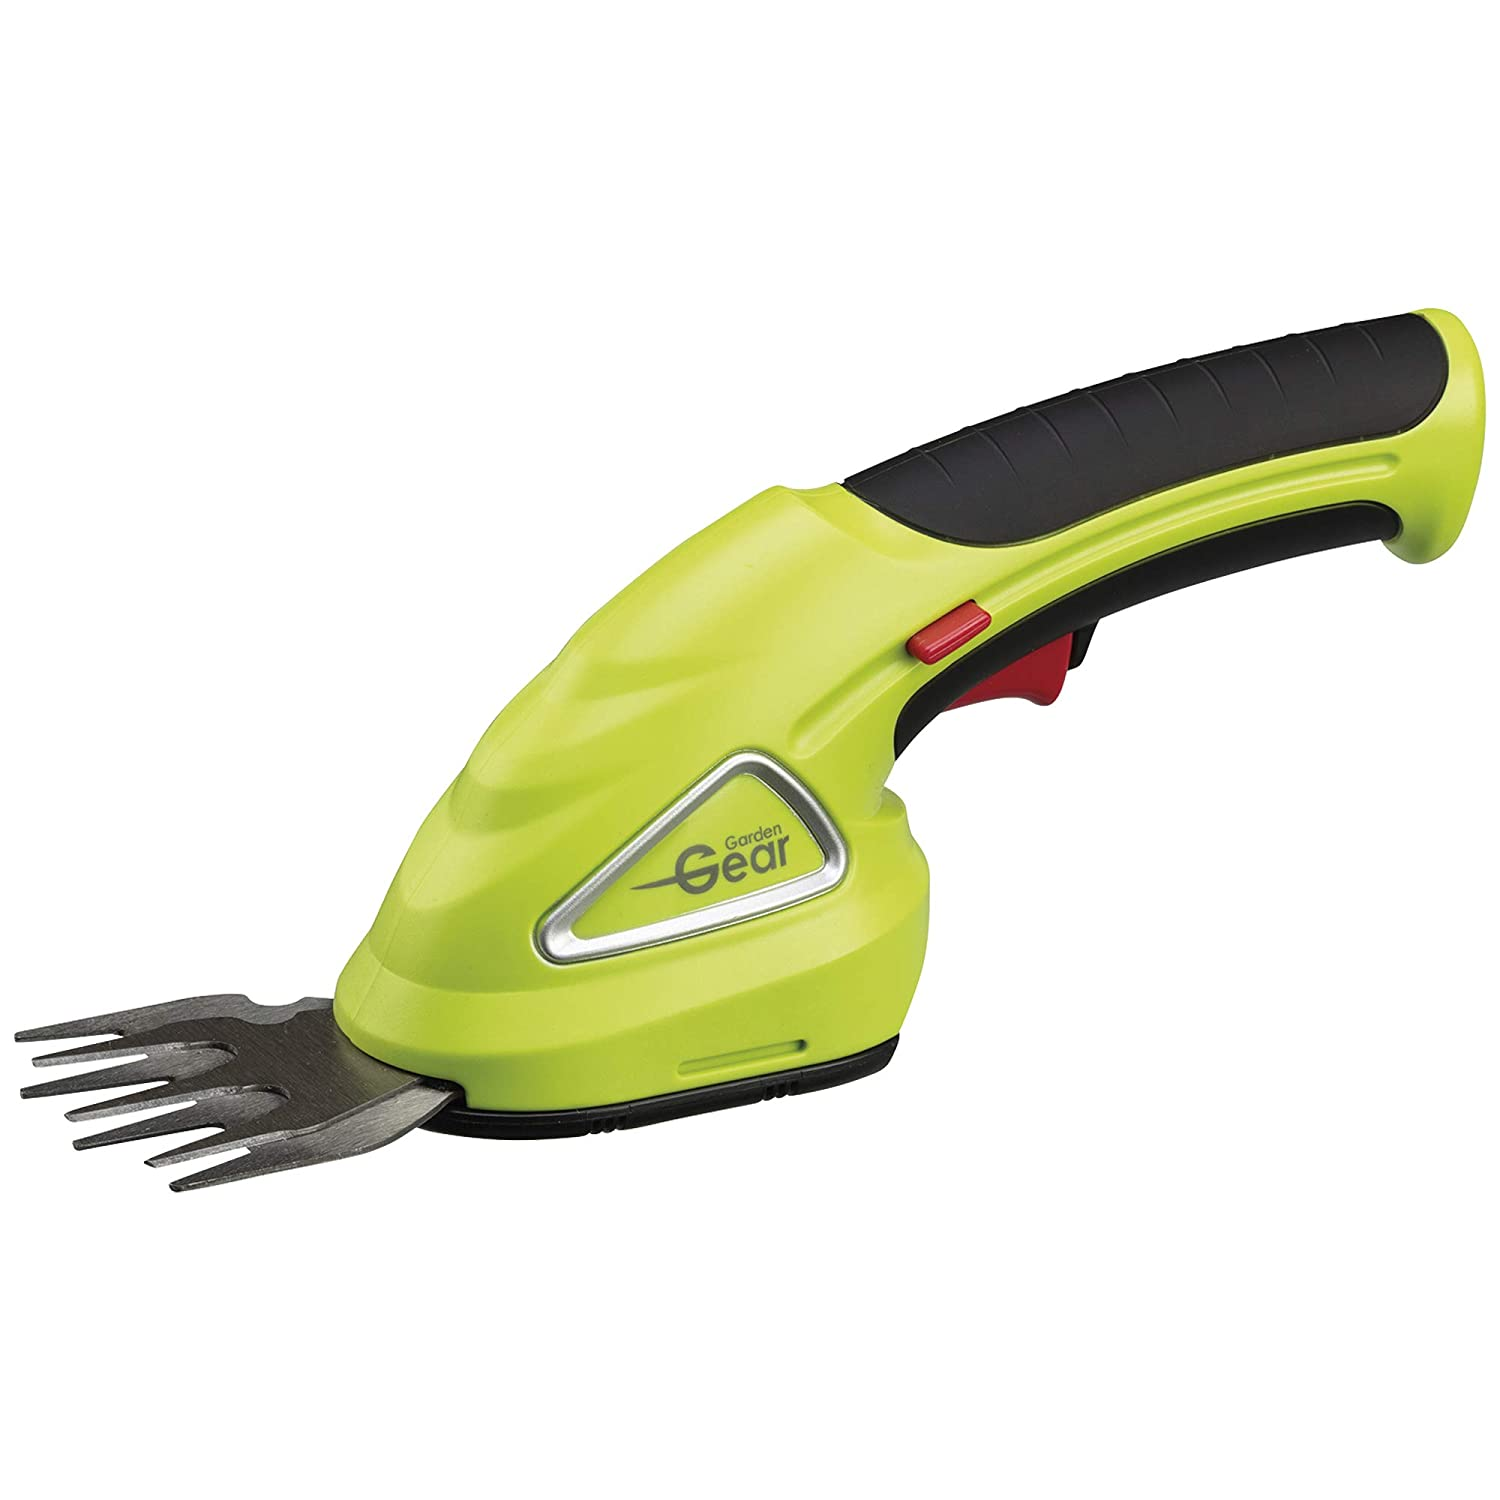 Garden Gear Garden Hedge Trimming Cordless Shears Lightweight Handheld 3 6V  with 80mm Cutting Blade (Trimming Shears)